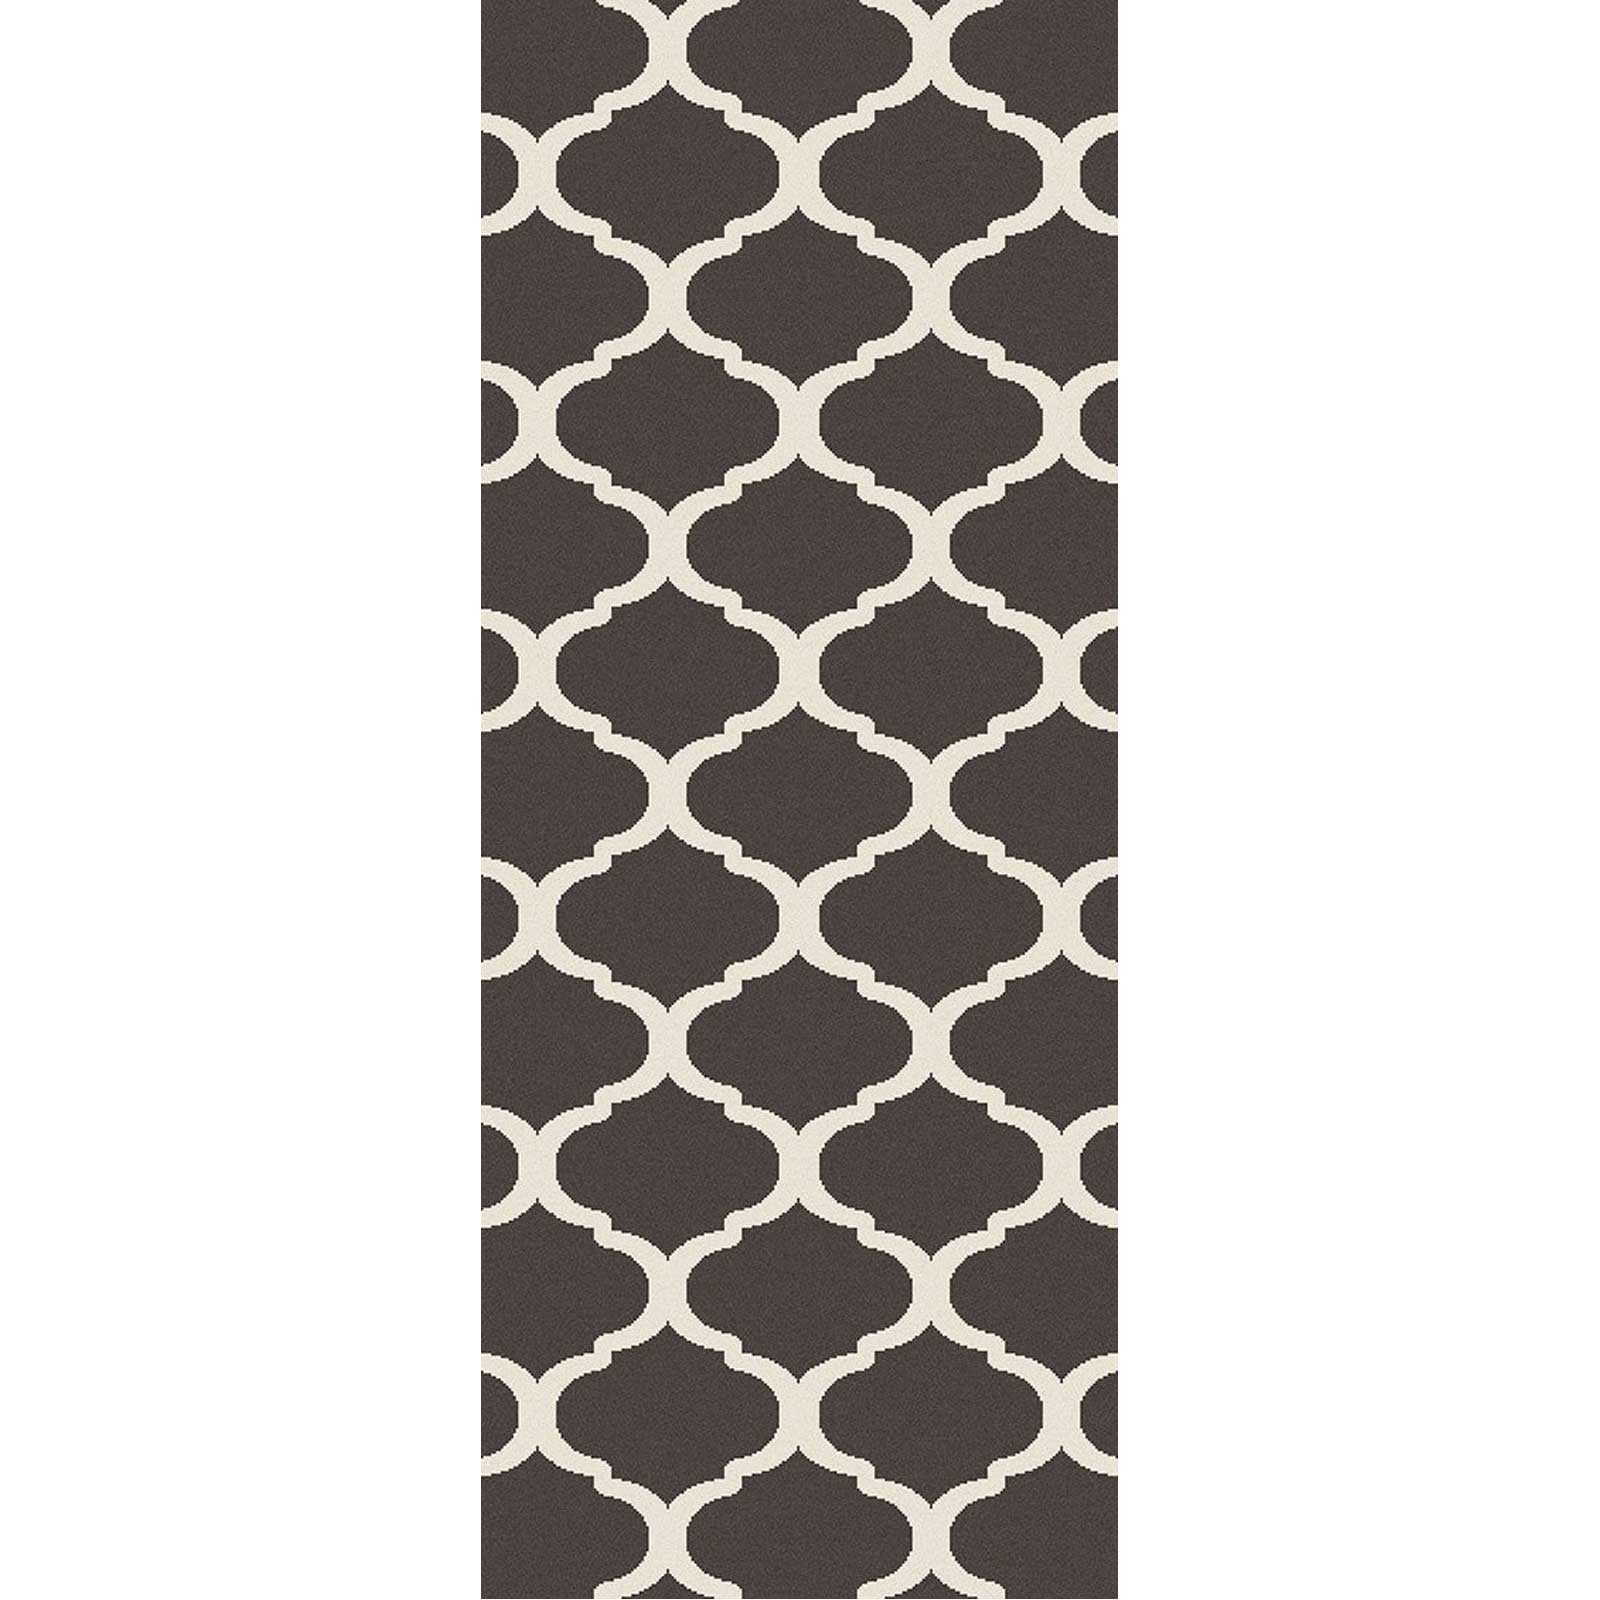 Horizon Lattice Ivory/Charcoal Runner Rug